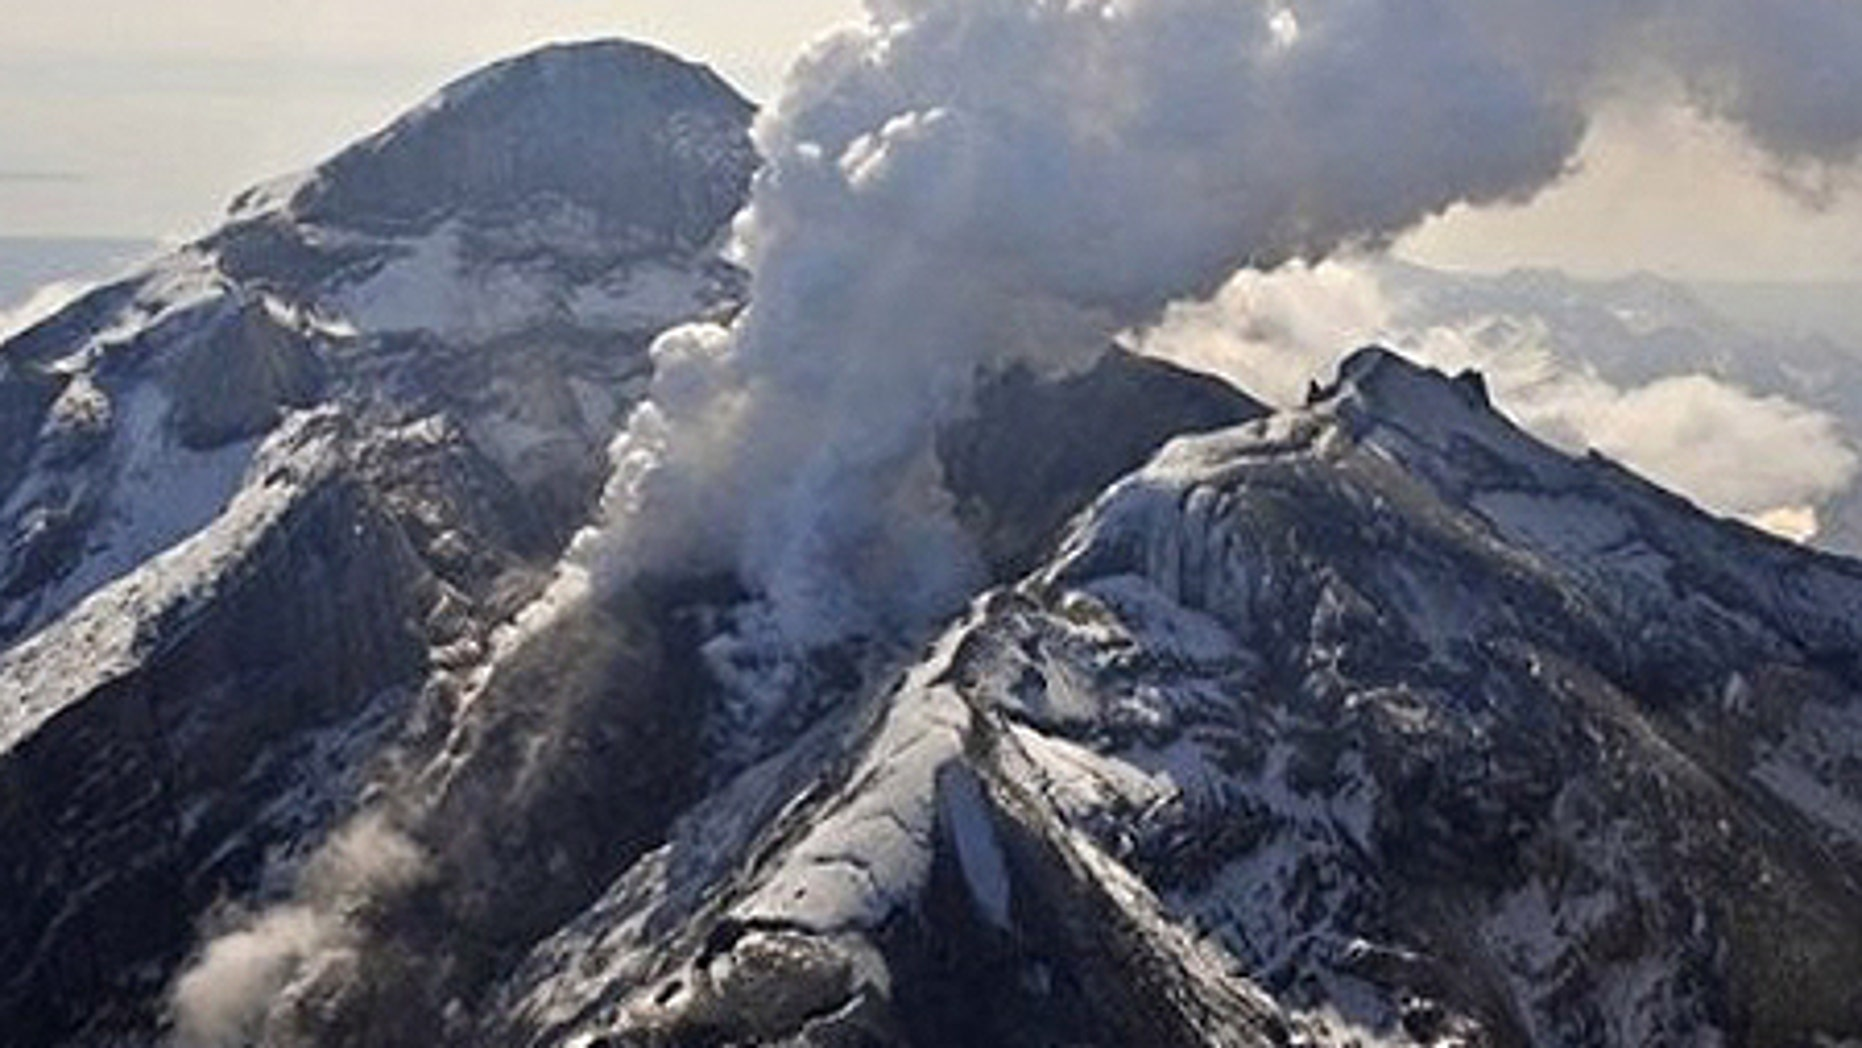 In this May 8, 2009 photo provided by the Alaska Volcano Observatory, the summit crater, active lava dome, and steam plume of the Mount Redoubt volcano, located about 100 miles southwest of Anchorage, are shown. Mount Redoubt hasn't had a major eruptive event in more than a month but scientists say that could soon change. (AP Photo/Alaska Volcano Observatory, USGS, Chris Waythomas)